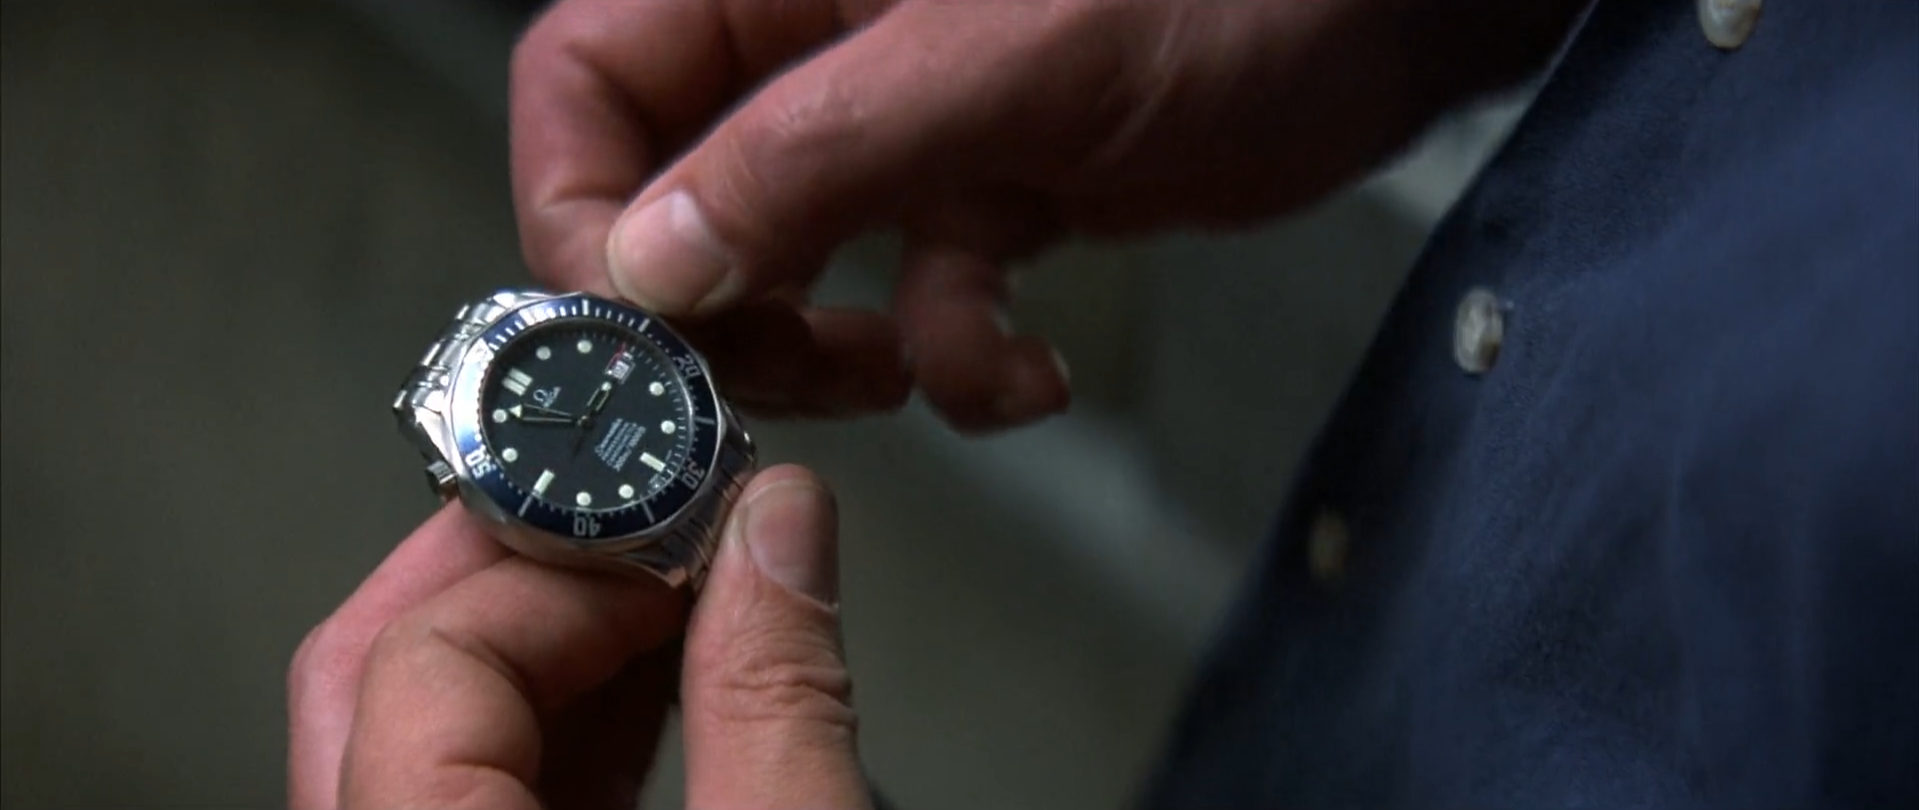 It's unclear in the context of the film whether this is an MI6 issued Omega that the Chinese acquired, and then modified, OR whether it's a Chinese copy of an Omega.